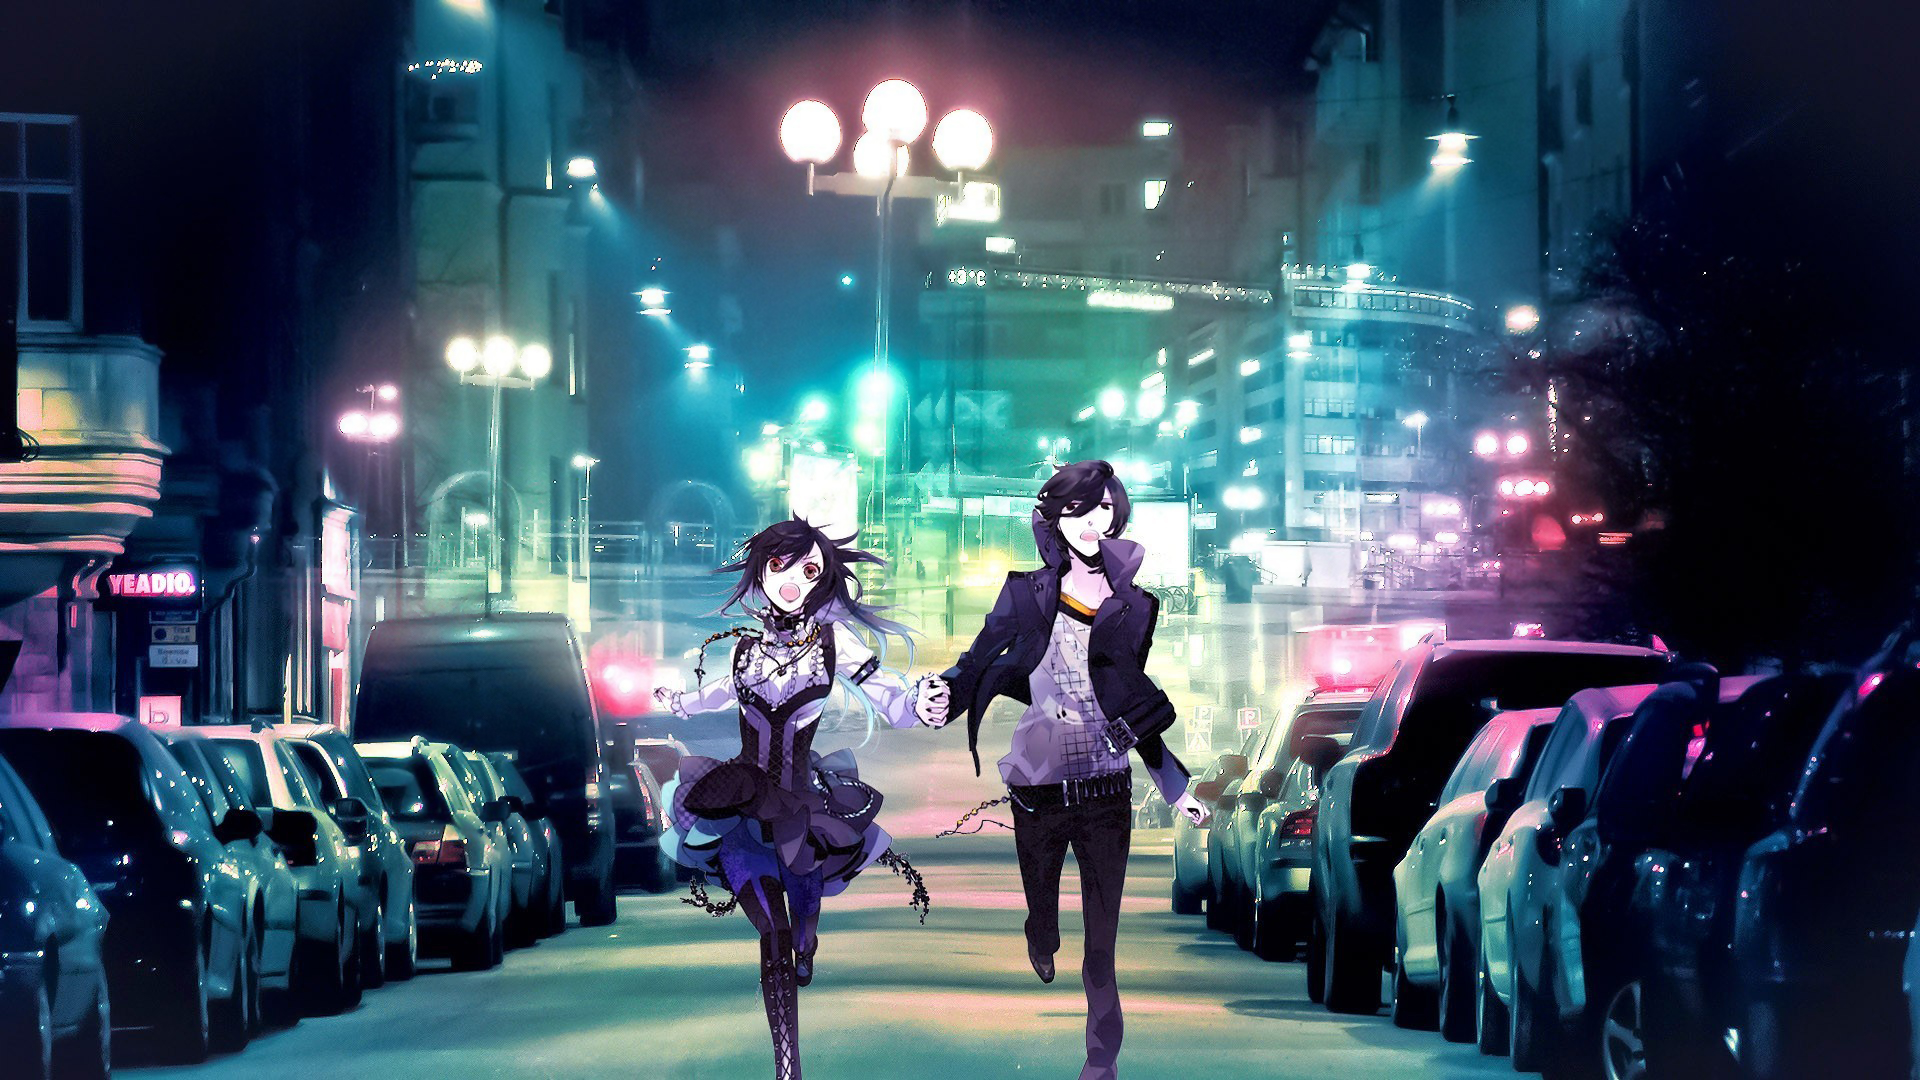 anime-boy-girl-running-city-1920×1080-wallpaper-wpc9202474